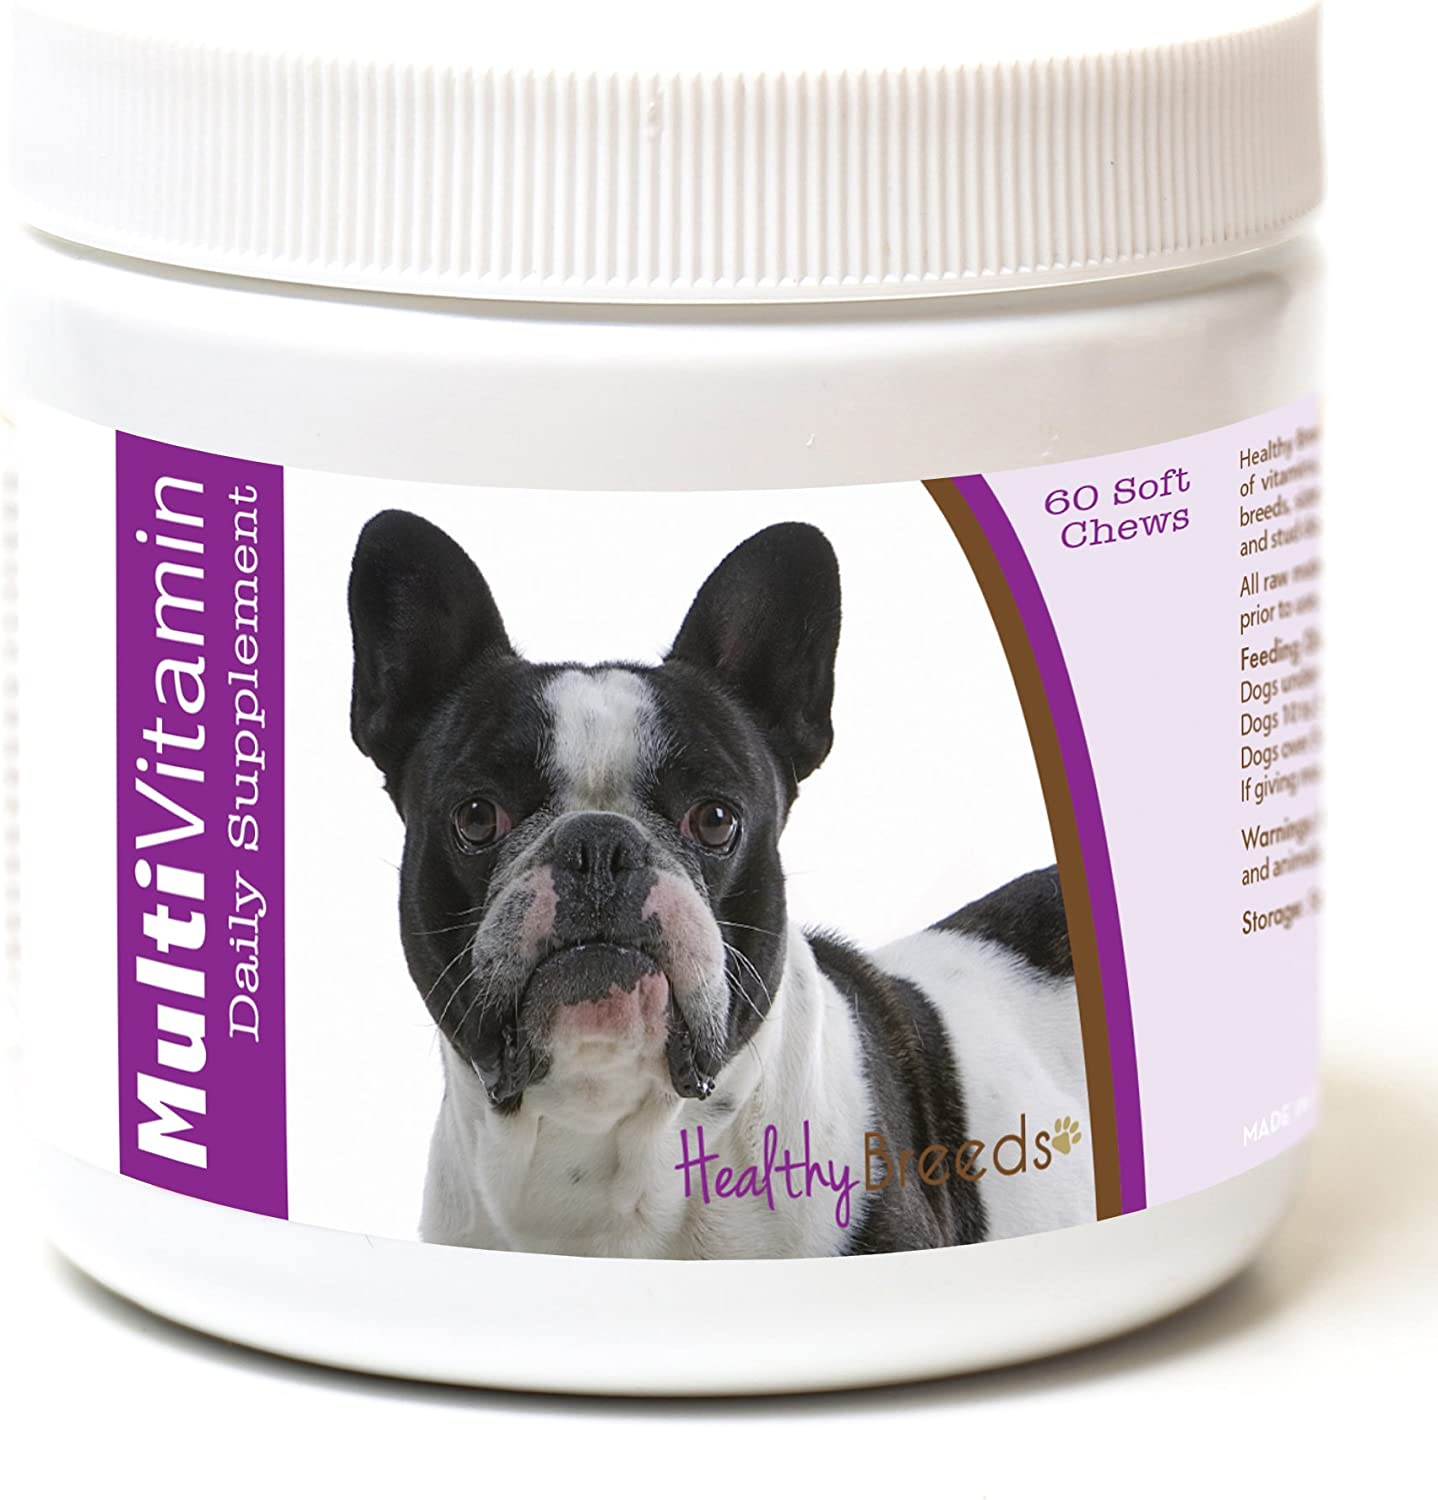 Branded goods Healthy Breeds Multivitamin Daily Dallas Mall Dietary - Supplement Over 200